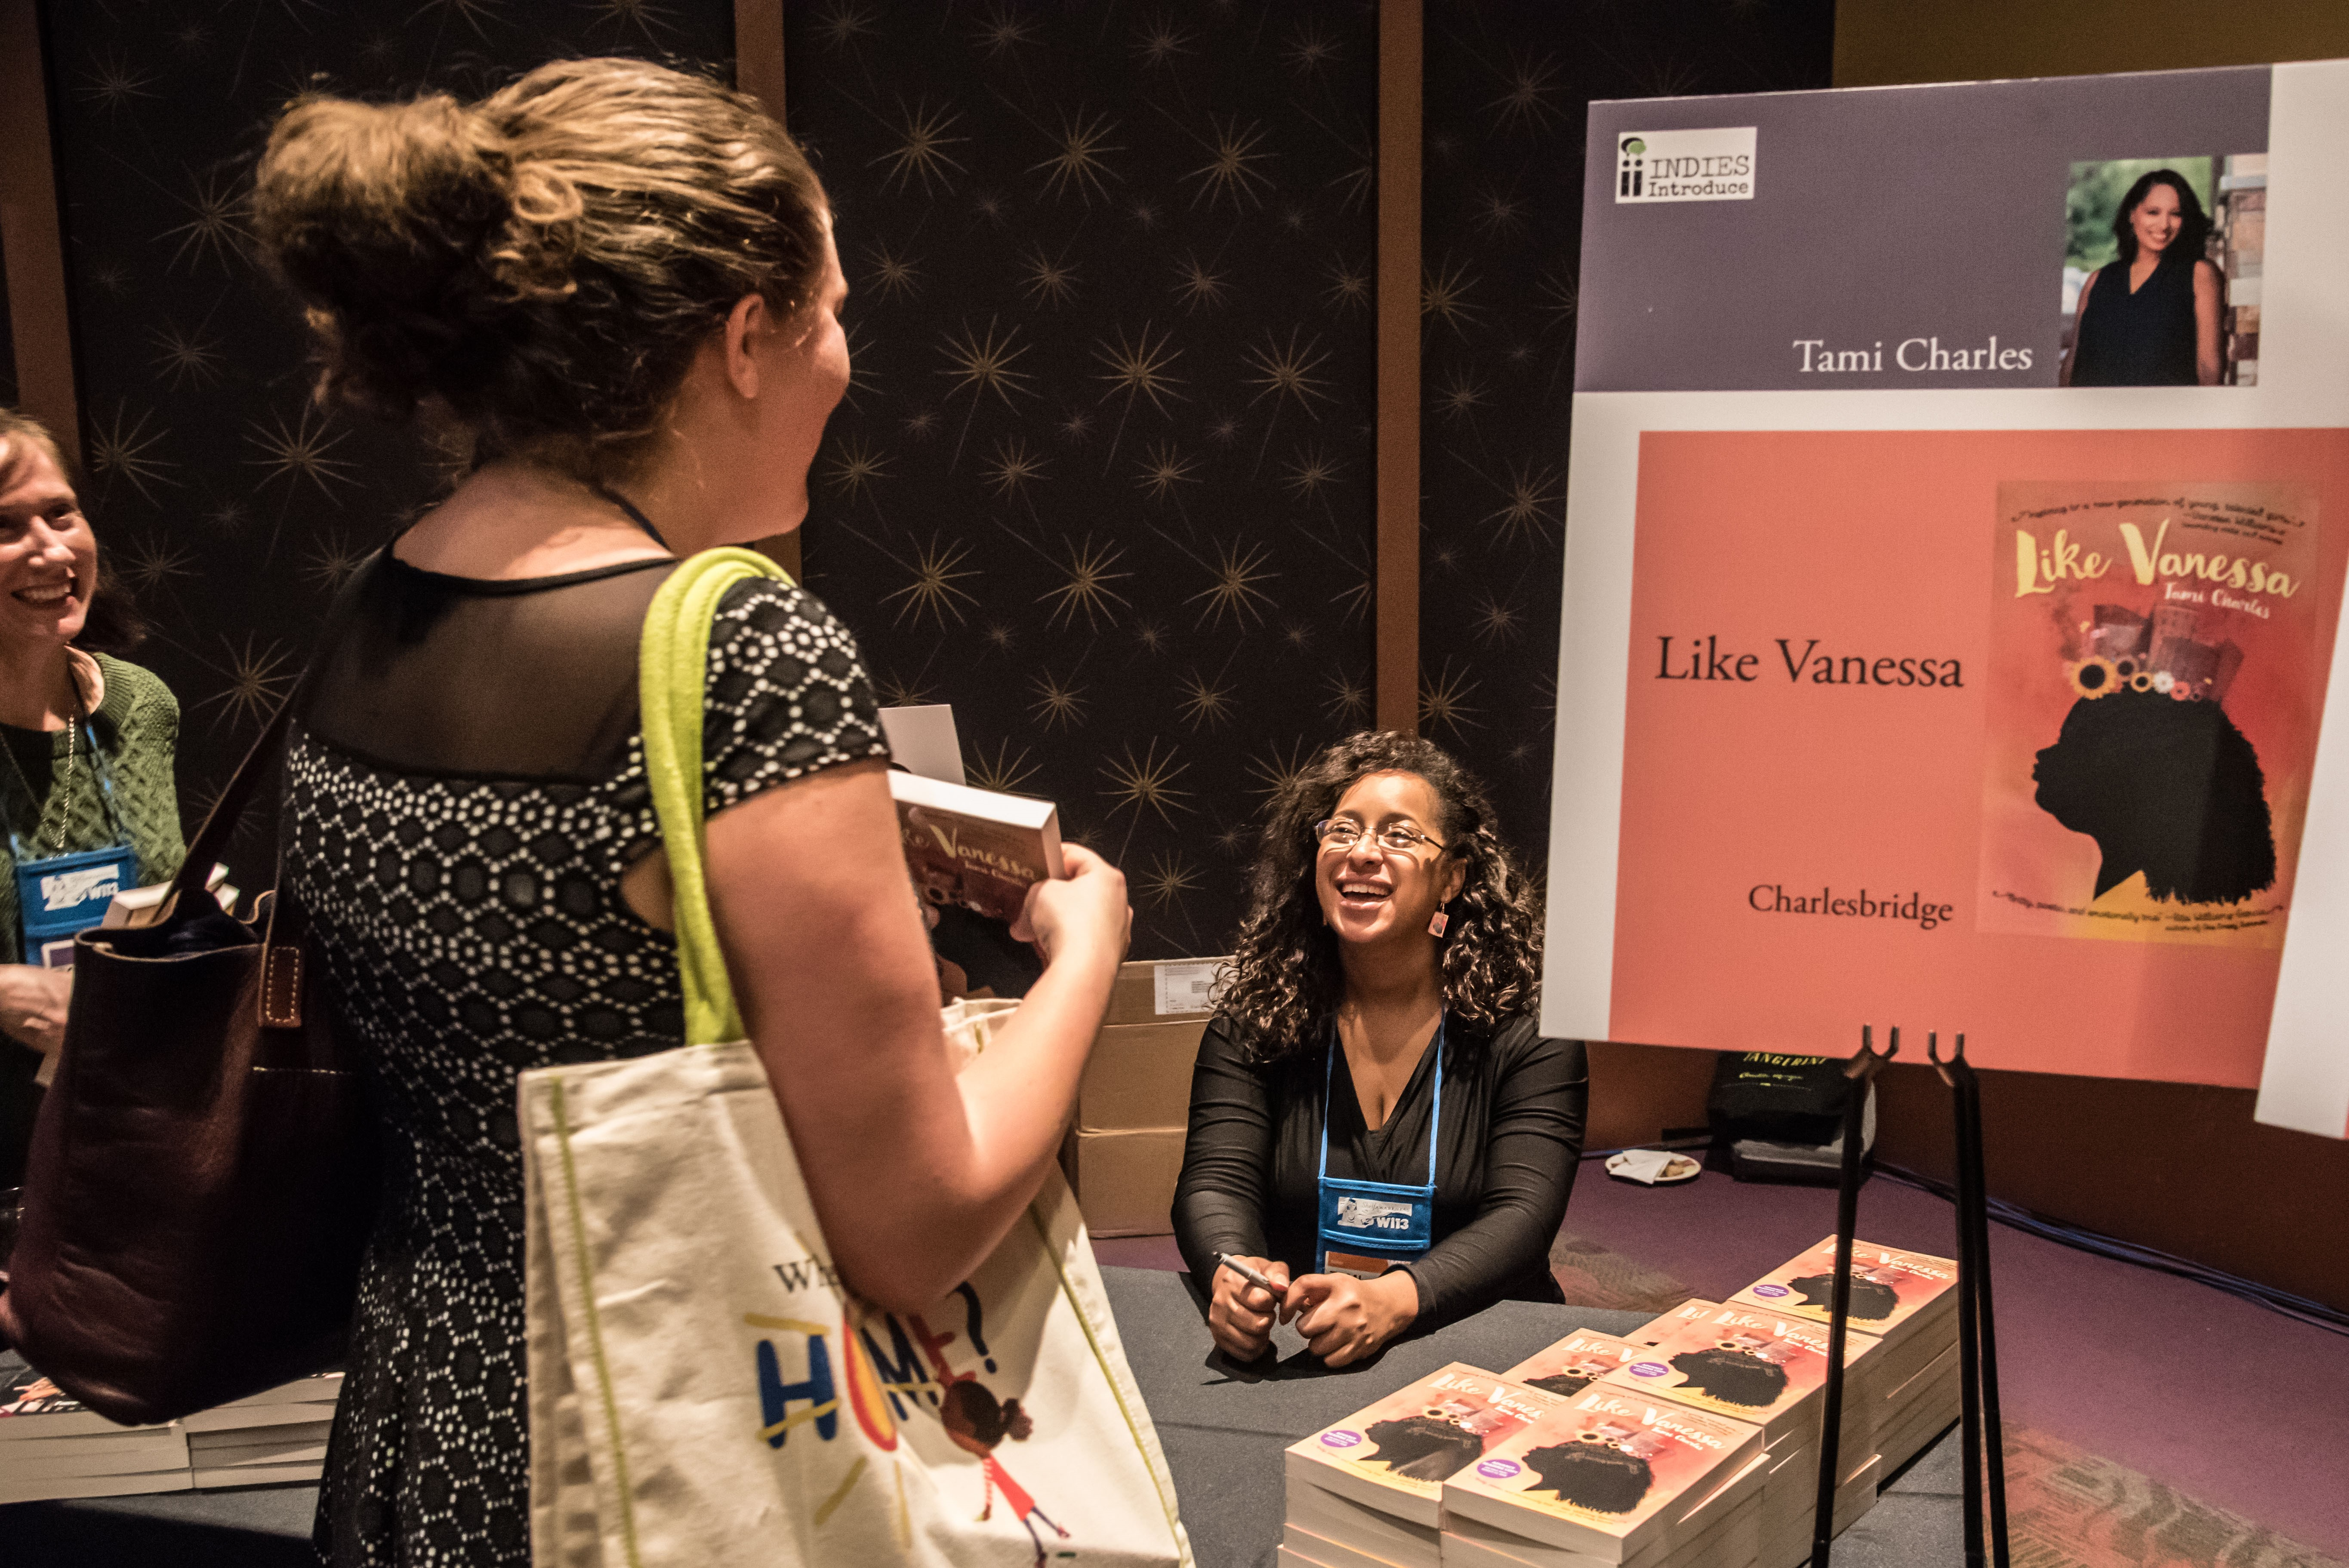 """Tami Charles signs copies of """"Like Vanessa"""" at the Author Reception."""